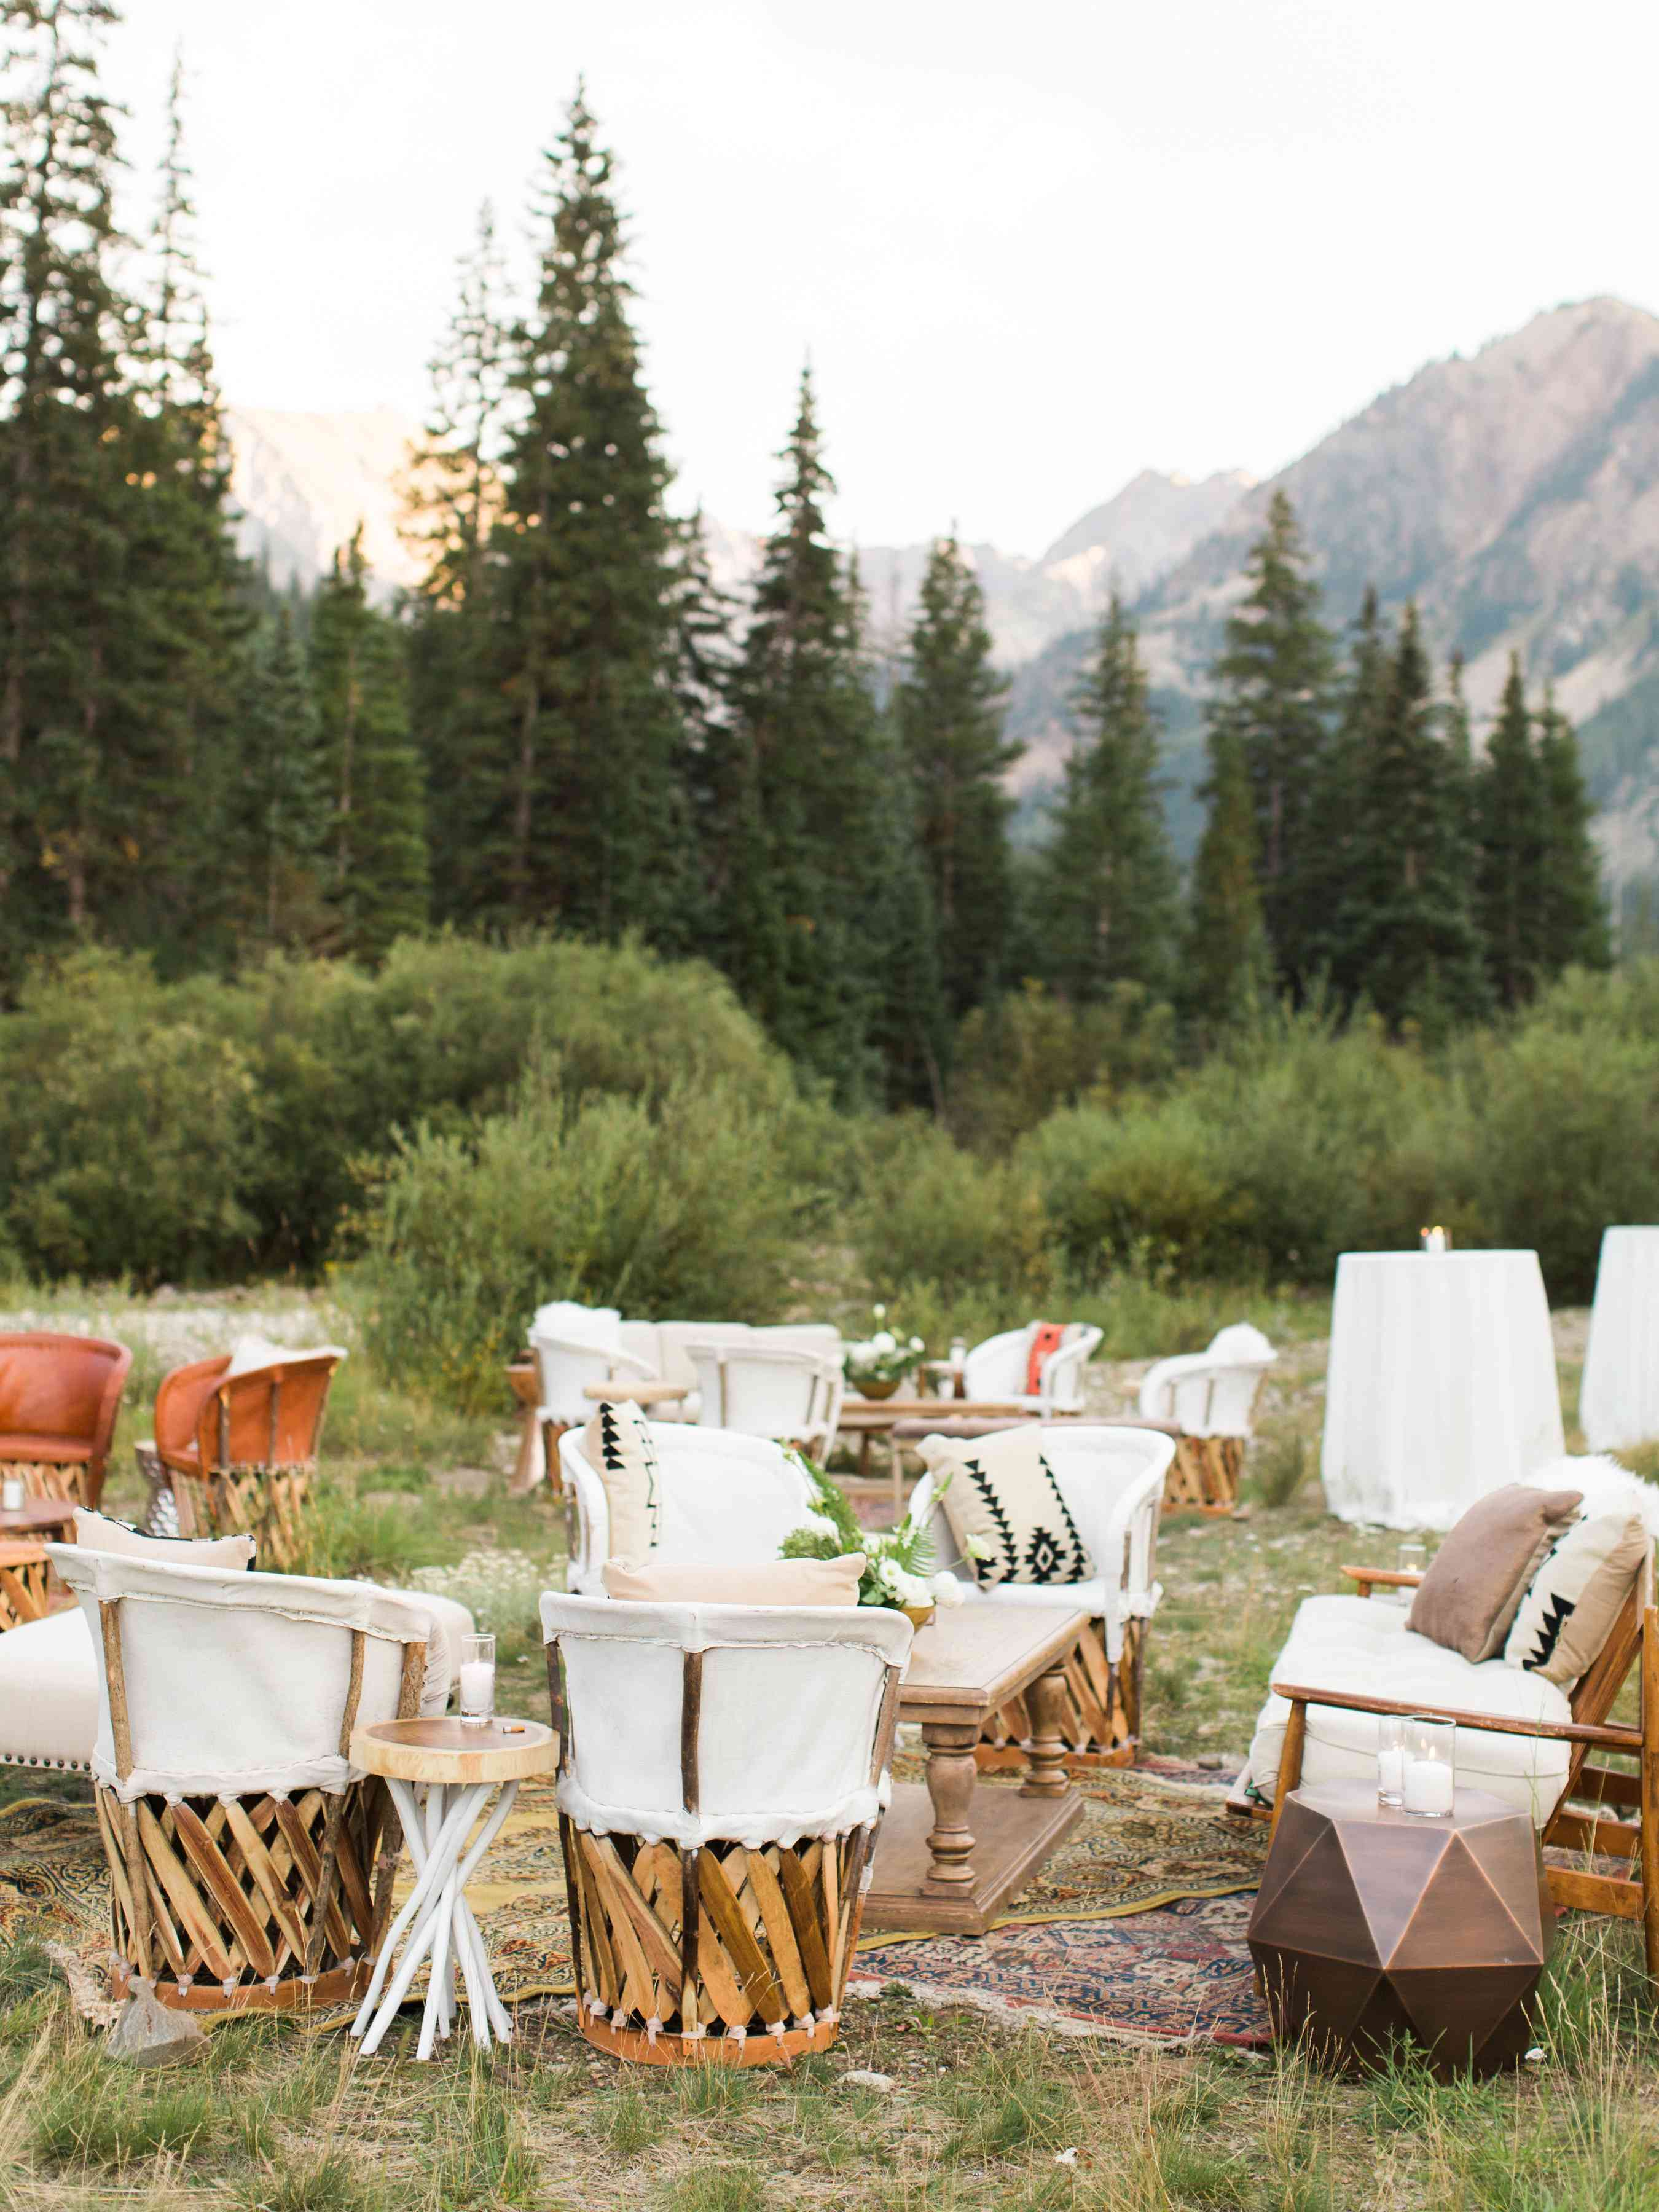 Set up of chairs and couches for an outdoor reception